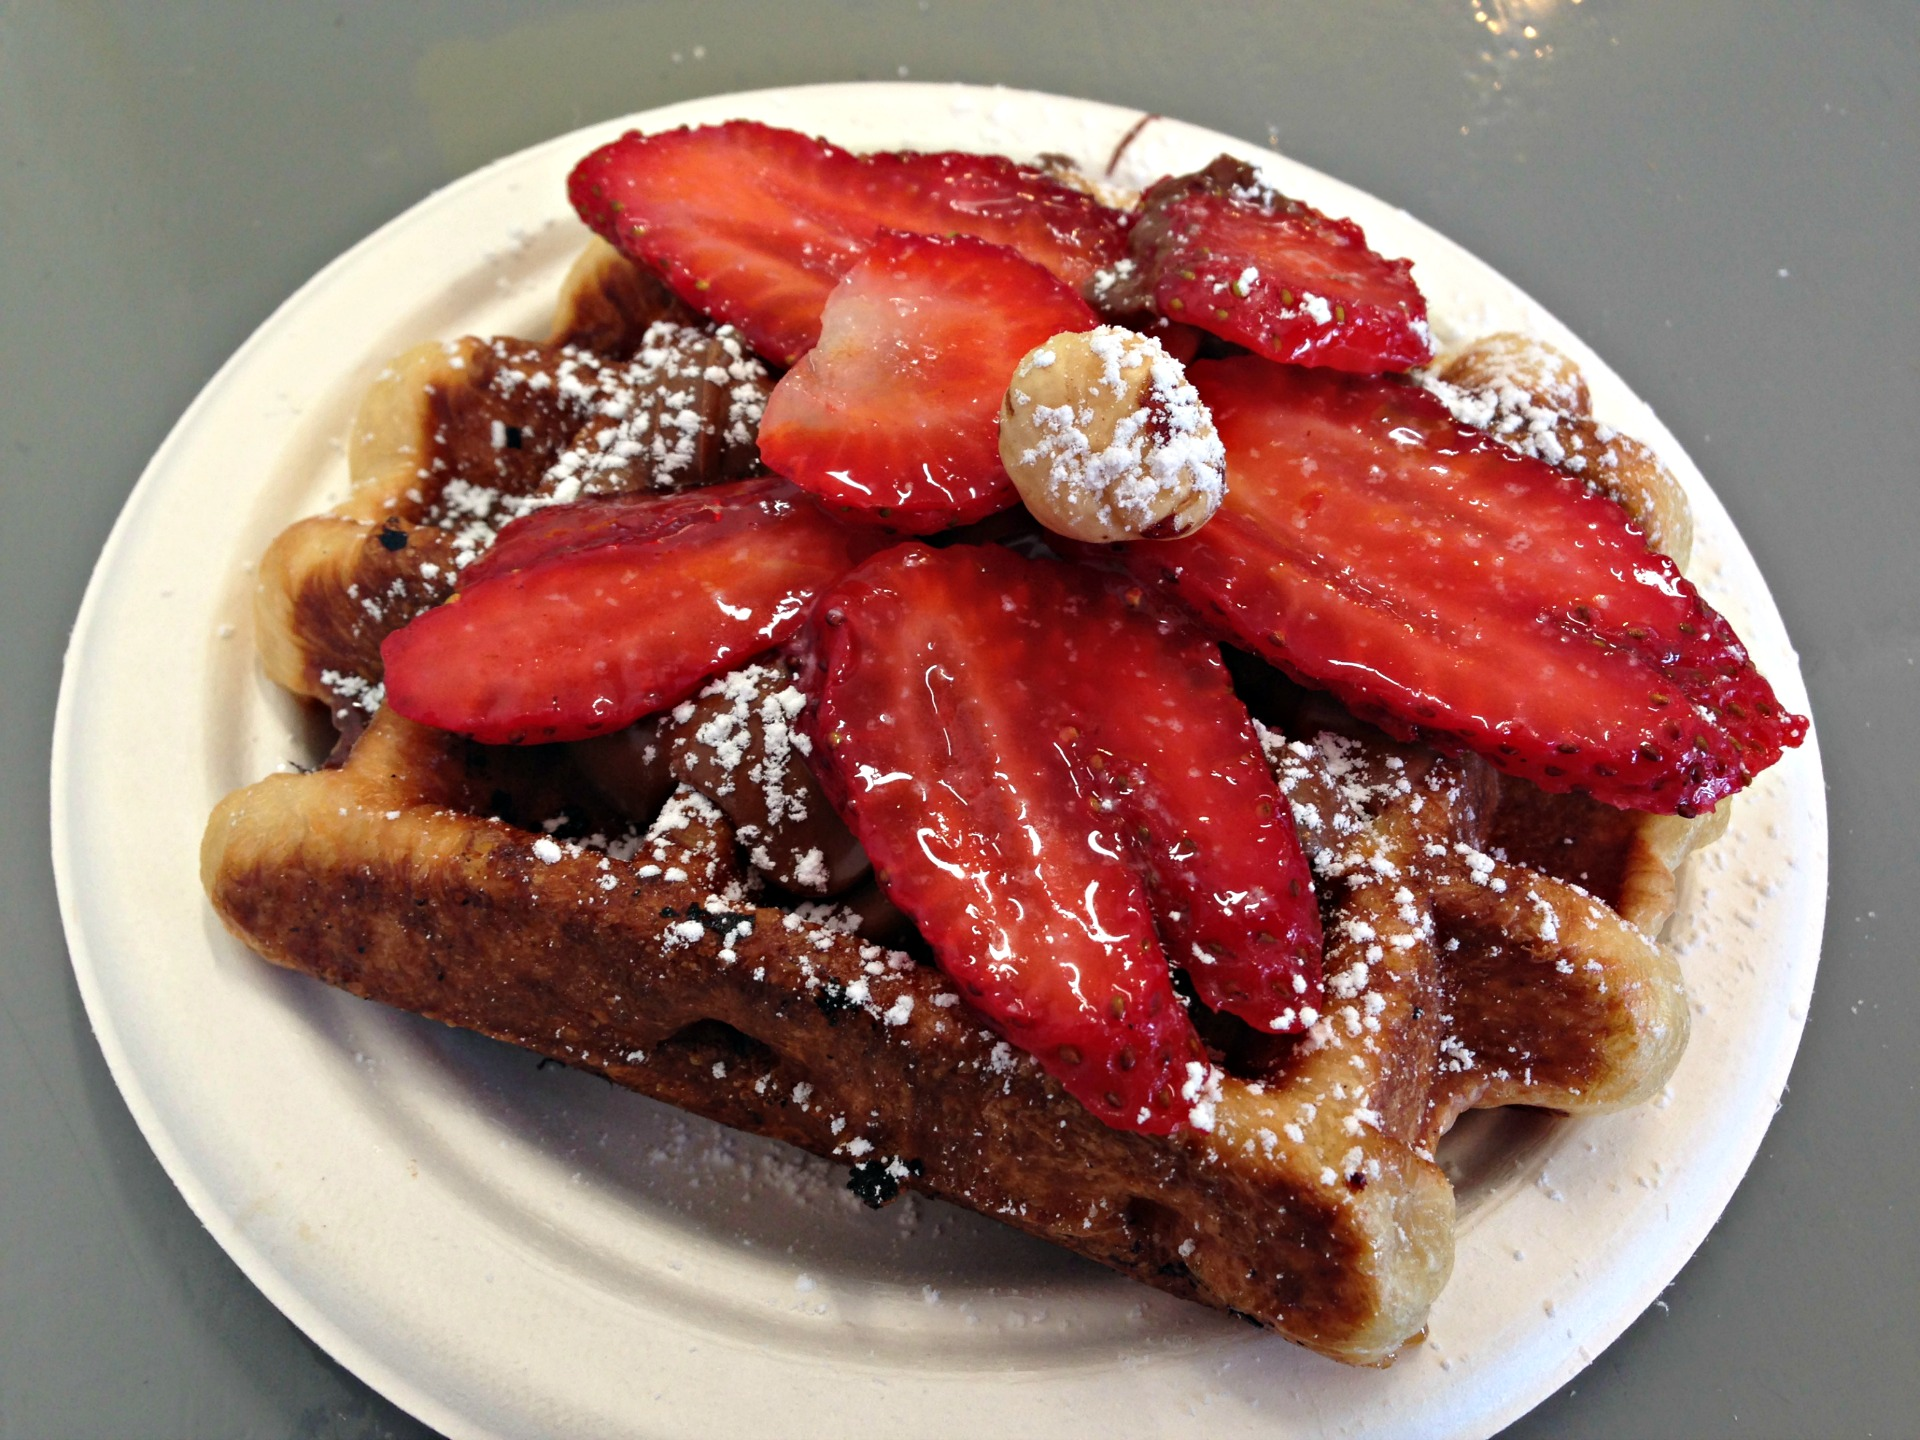 A Nutella and strawberry topped liege waffle at at Little Gem Belgian Waffles.